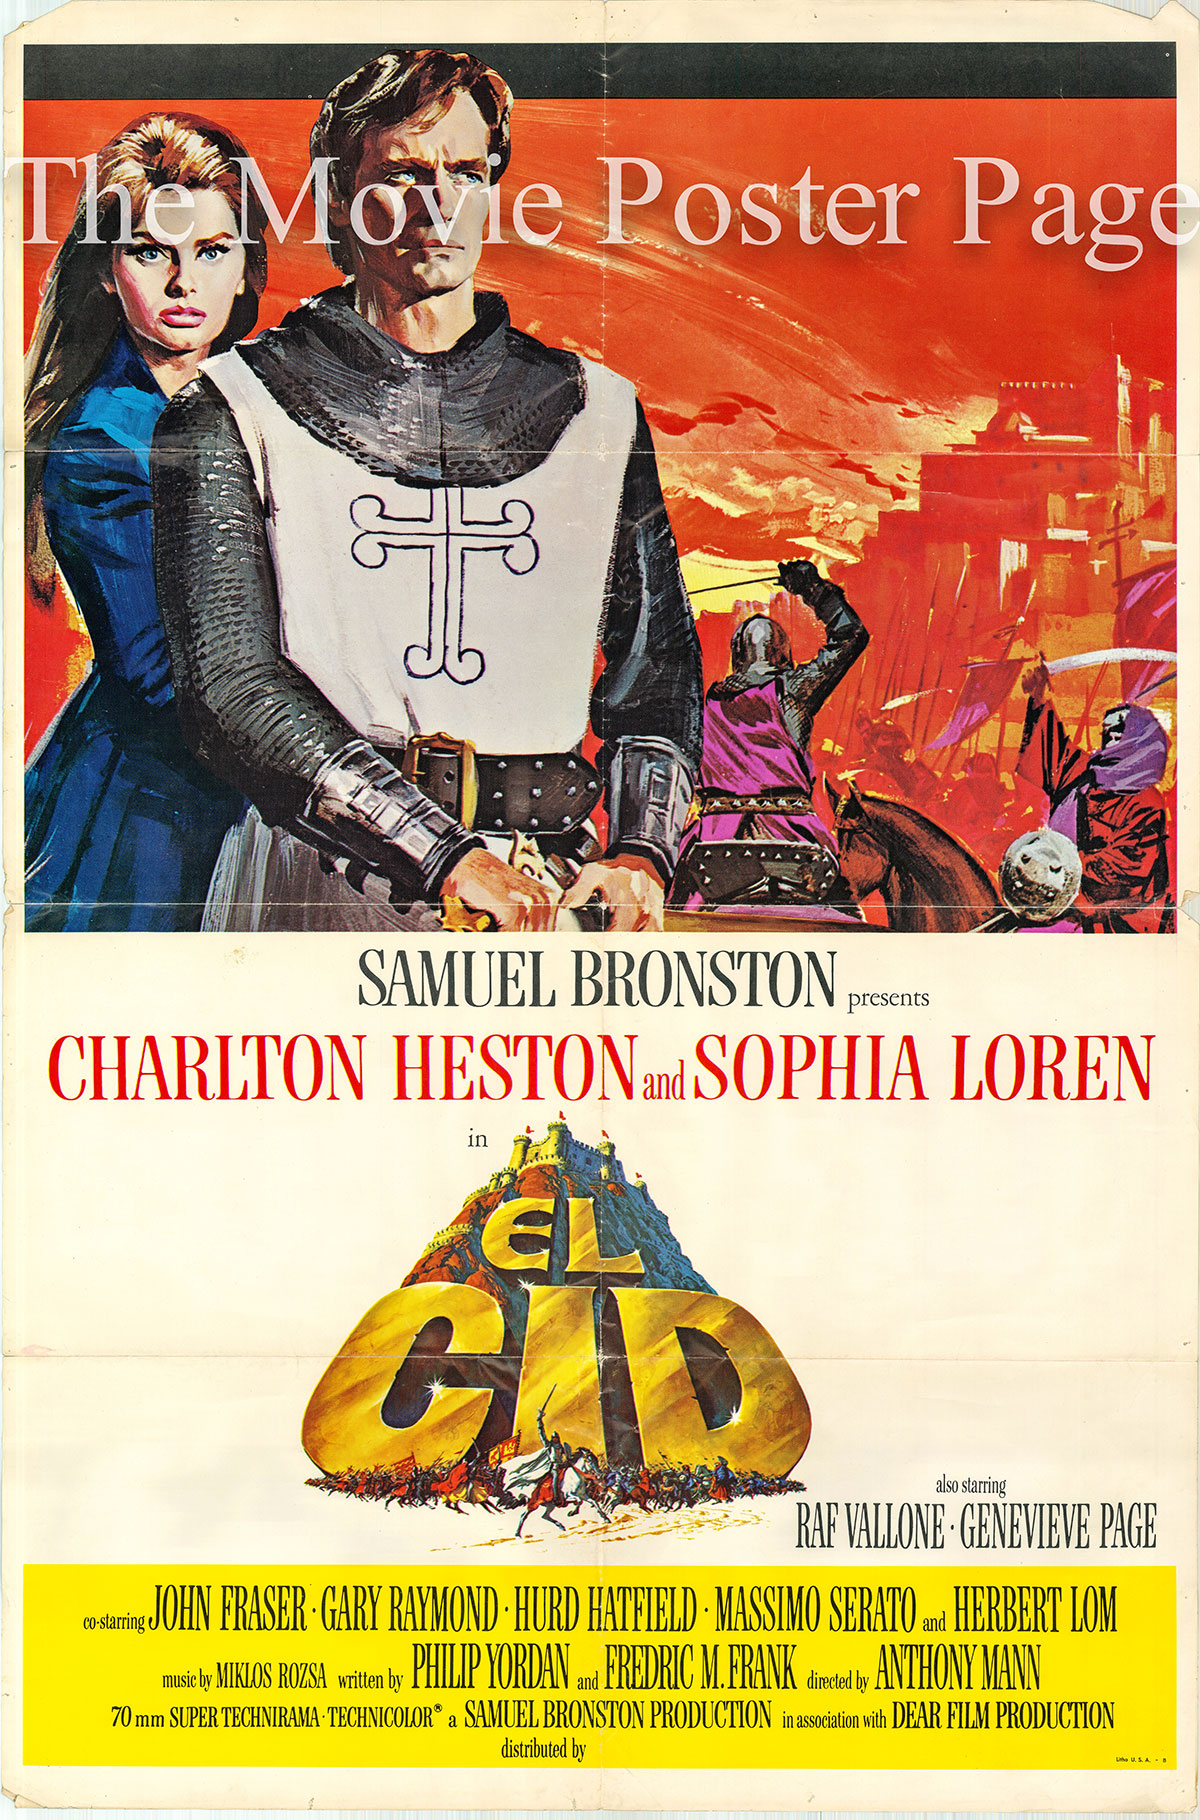 Pictured is a US promotional poster for the 1961 Anthony Mann film El Cid starring Charlton Heston and Sophia Loren.